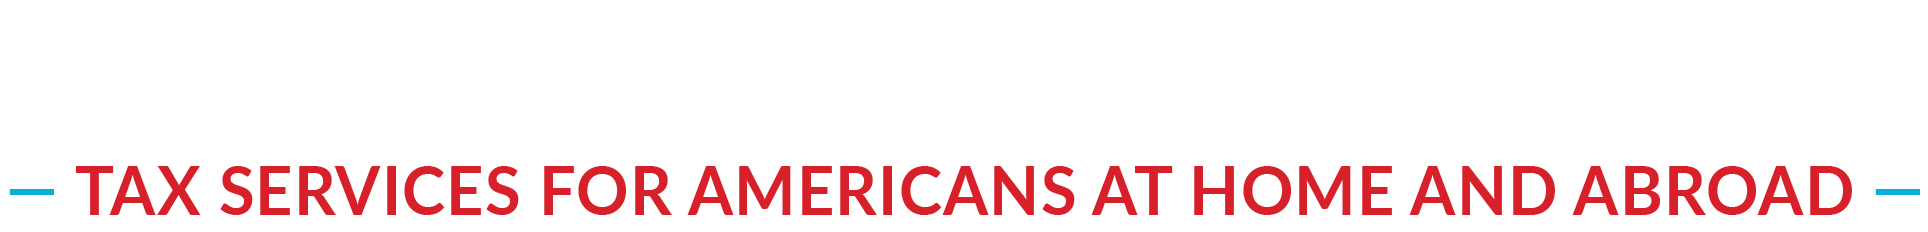 AA American Tax Services